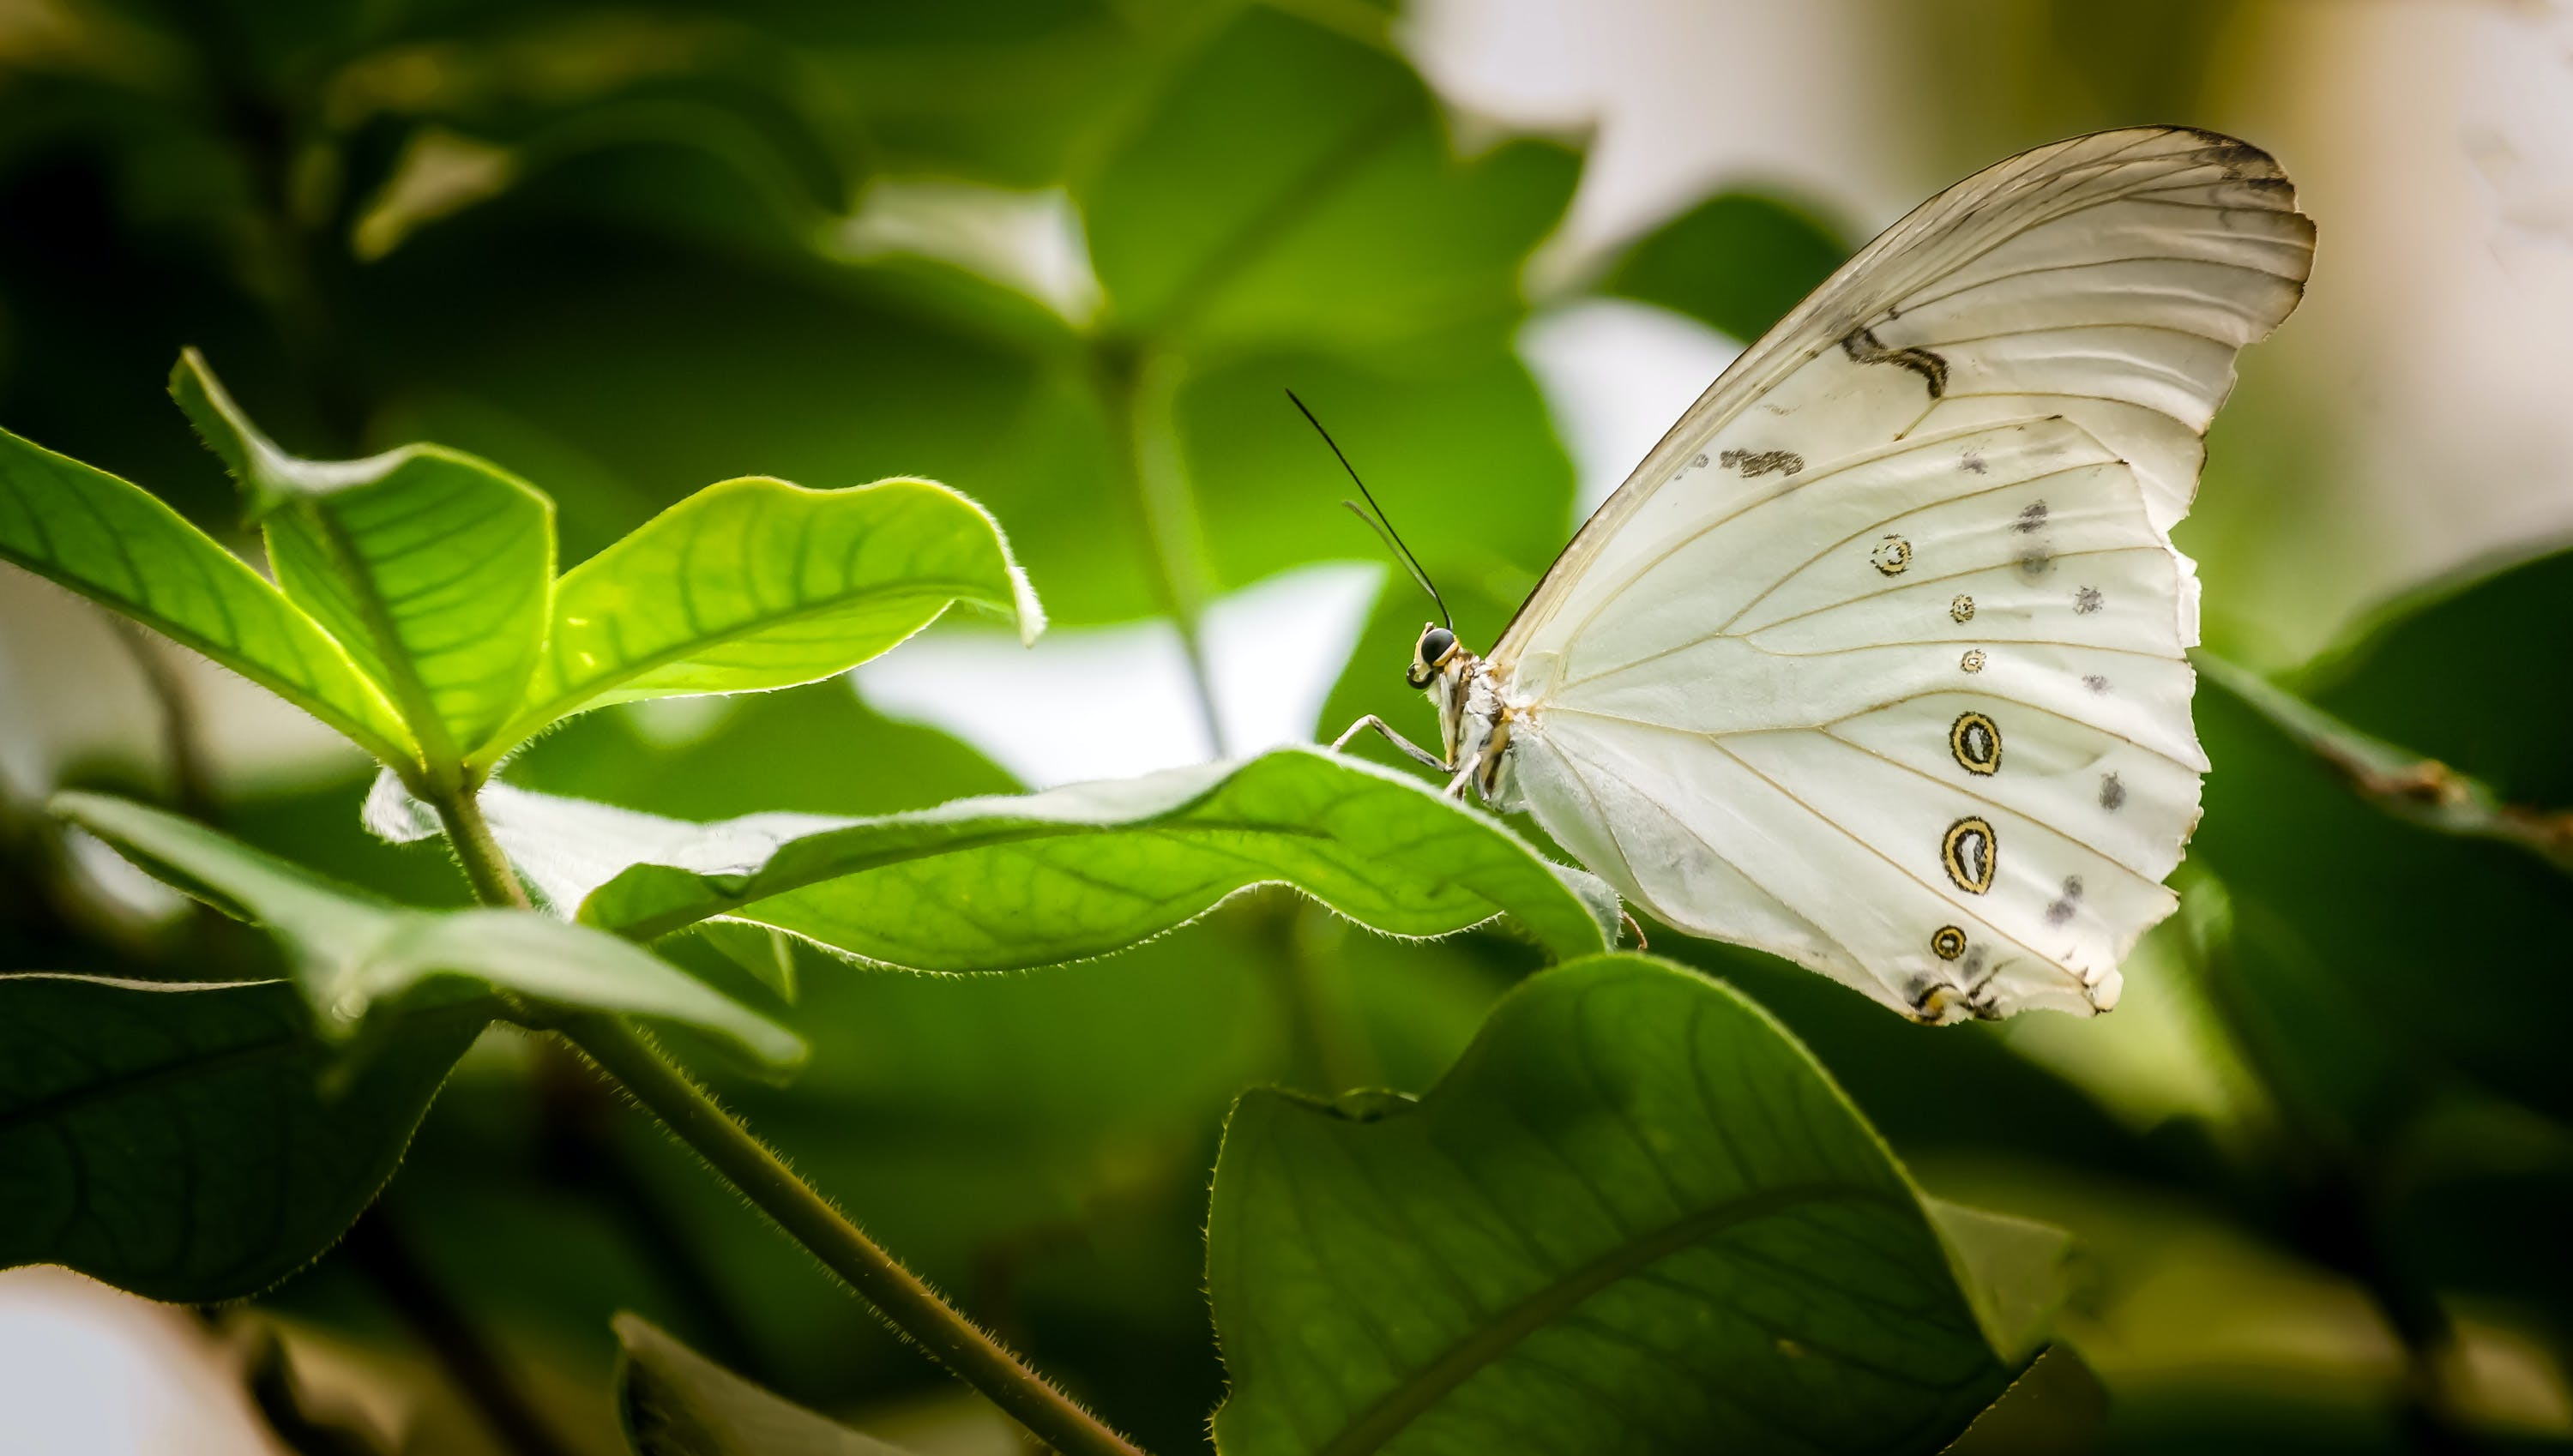 White Butterfly Perched on Green Leaf